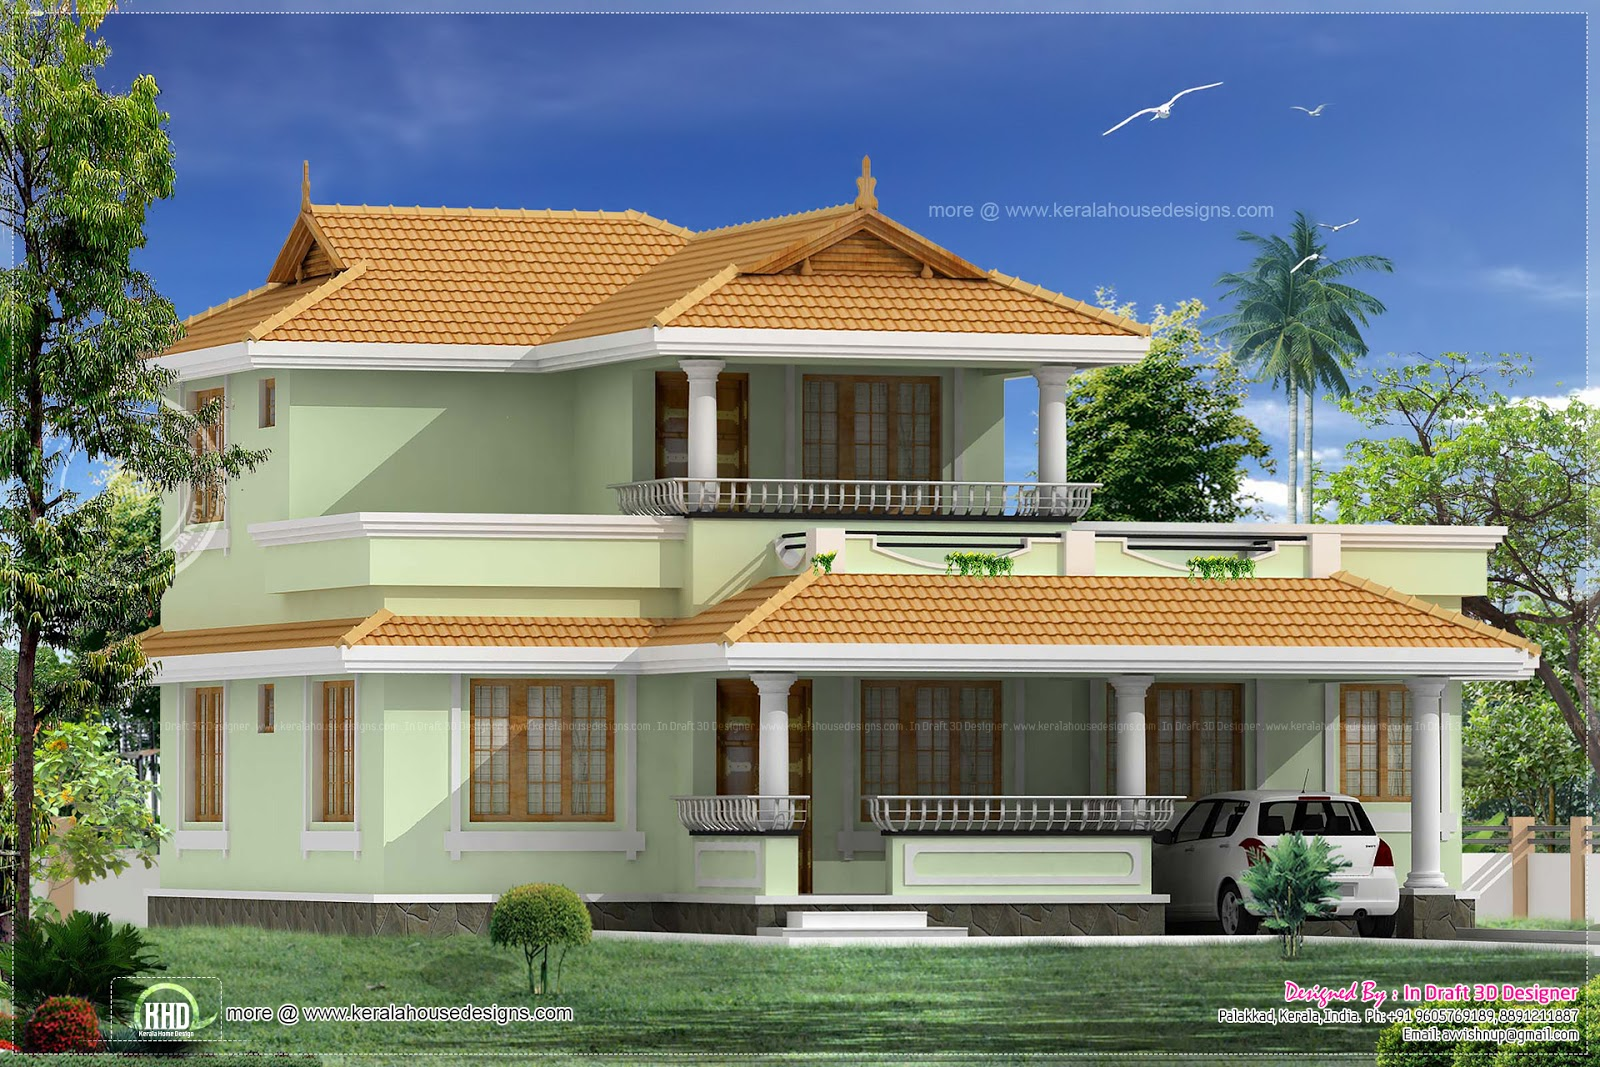 Bed room Kerala traditional villa in 1754 sqft. | House Design Plans